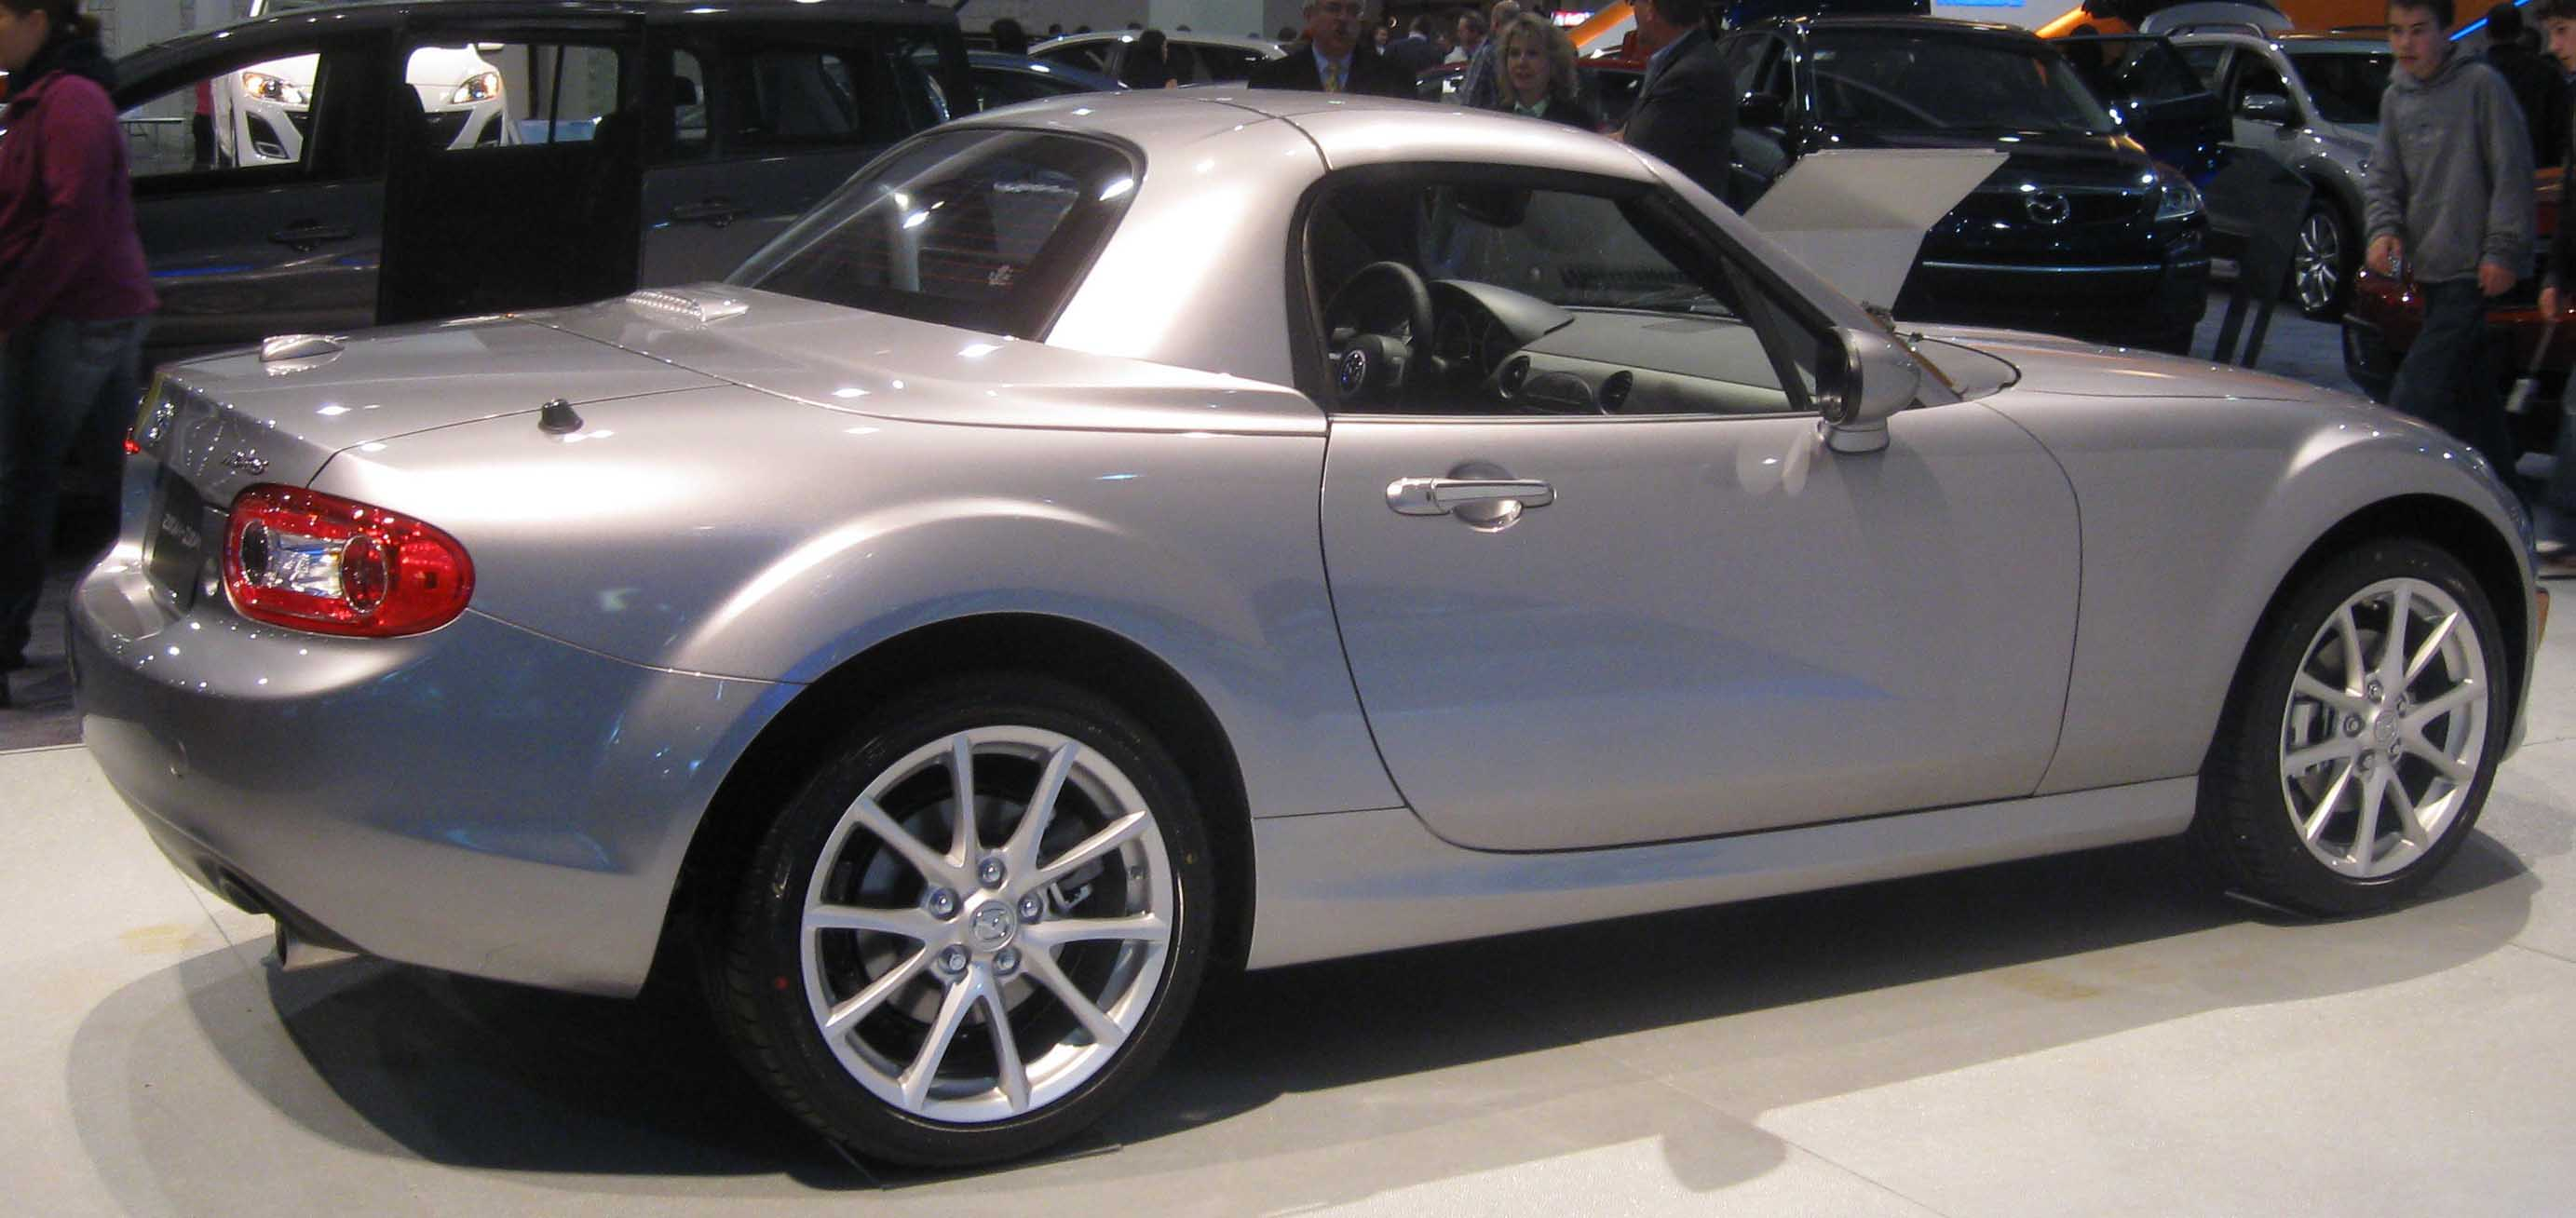 https://upload.wikimedia.org/wikipedia/commons/c/cb/2009_Mazda_MX-5_hardtop--DC.jpg